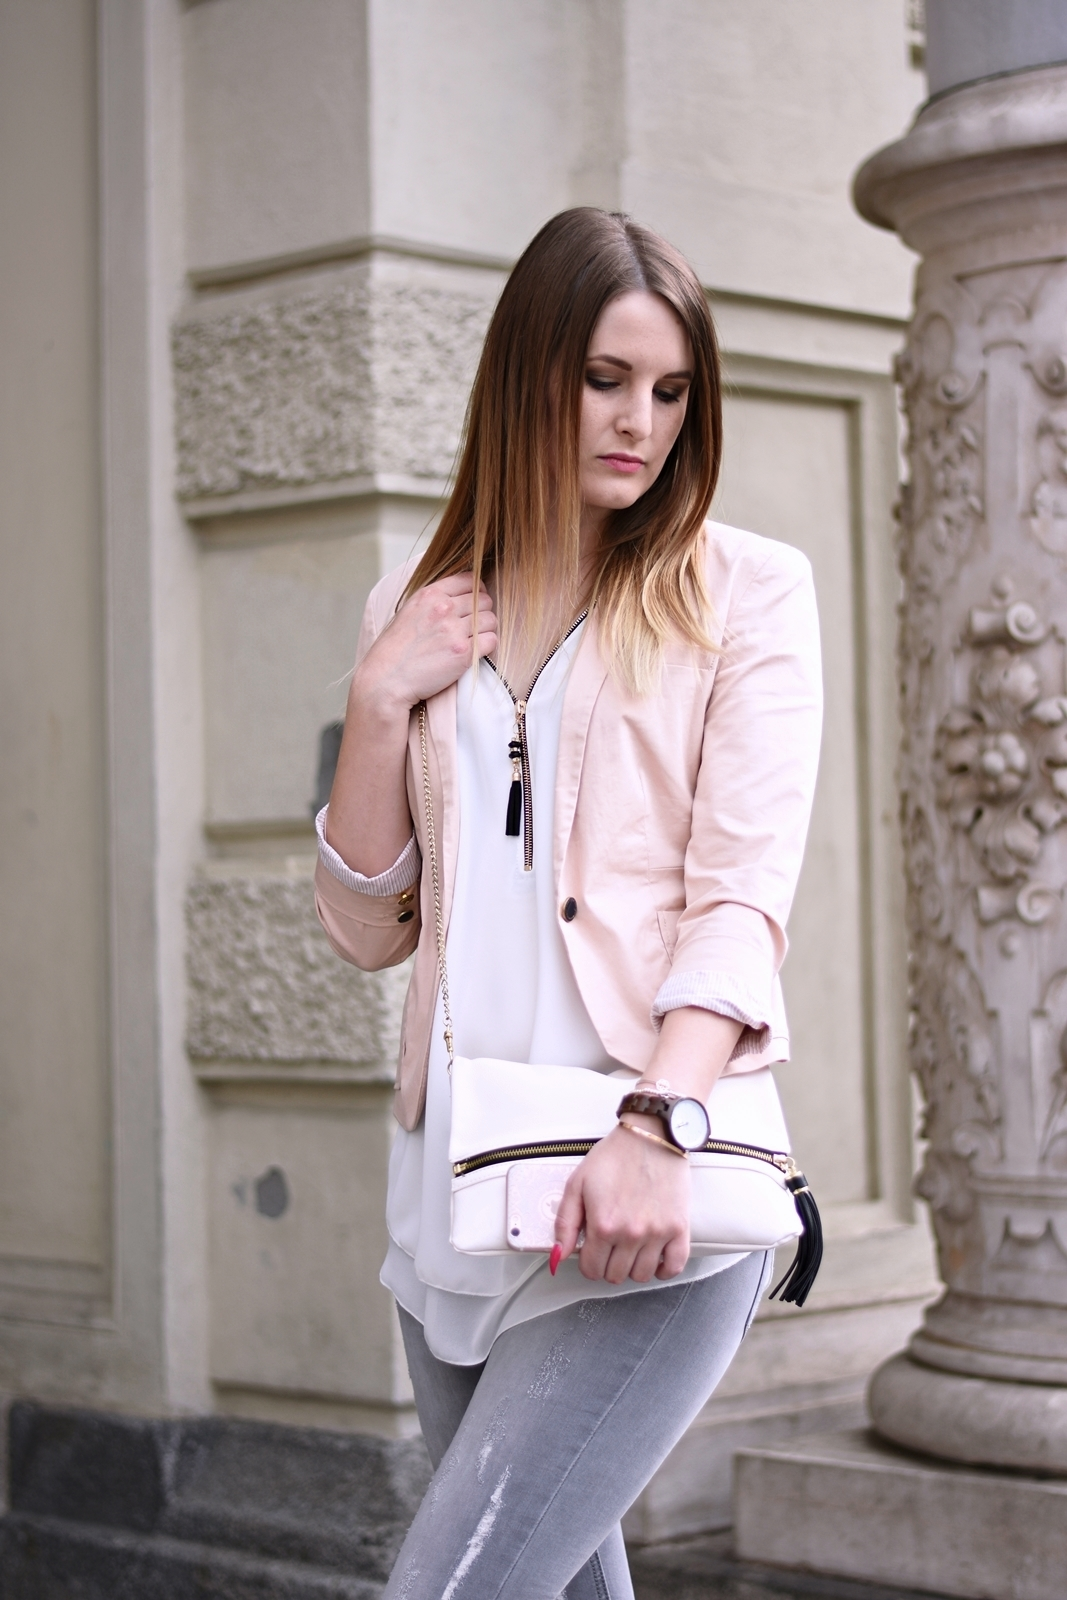 Pretty in Pastell - Pastell Look - Outfit - Mode - Frühling - Modeblog - Fashionblog - Fashionladyloves Blog